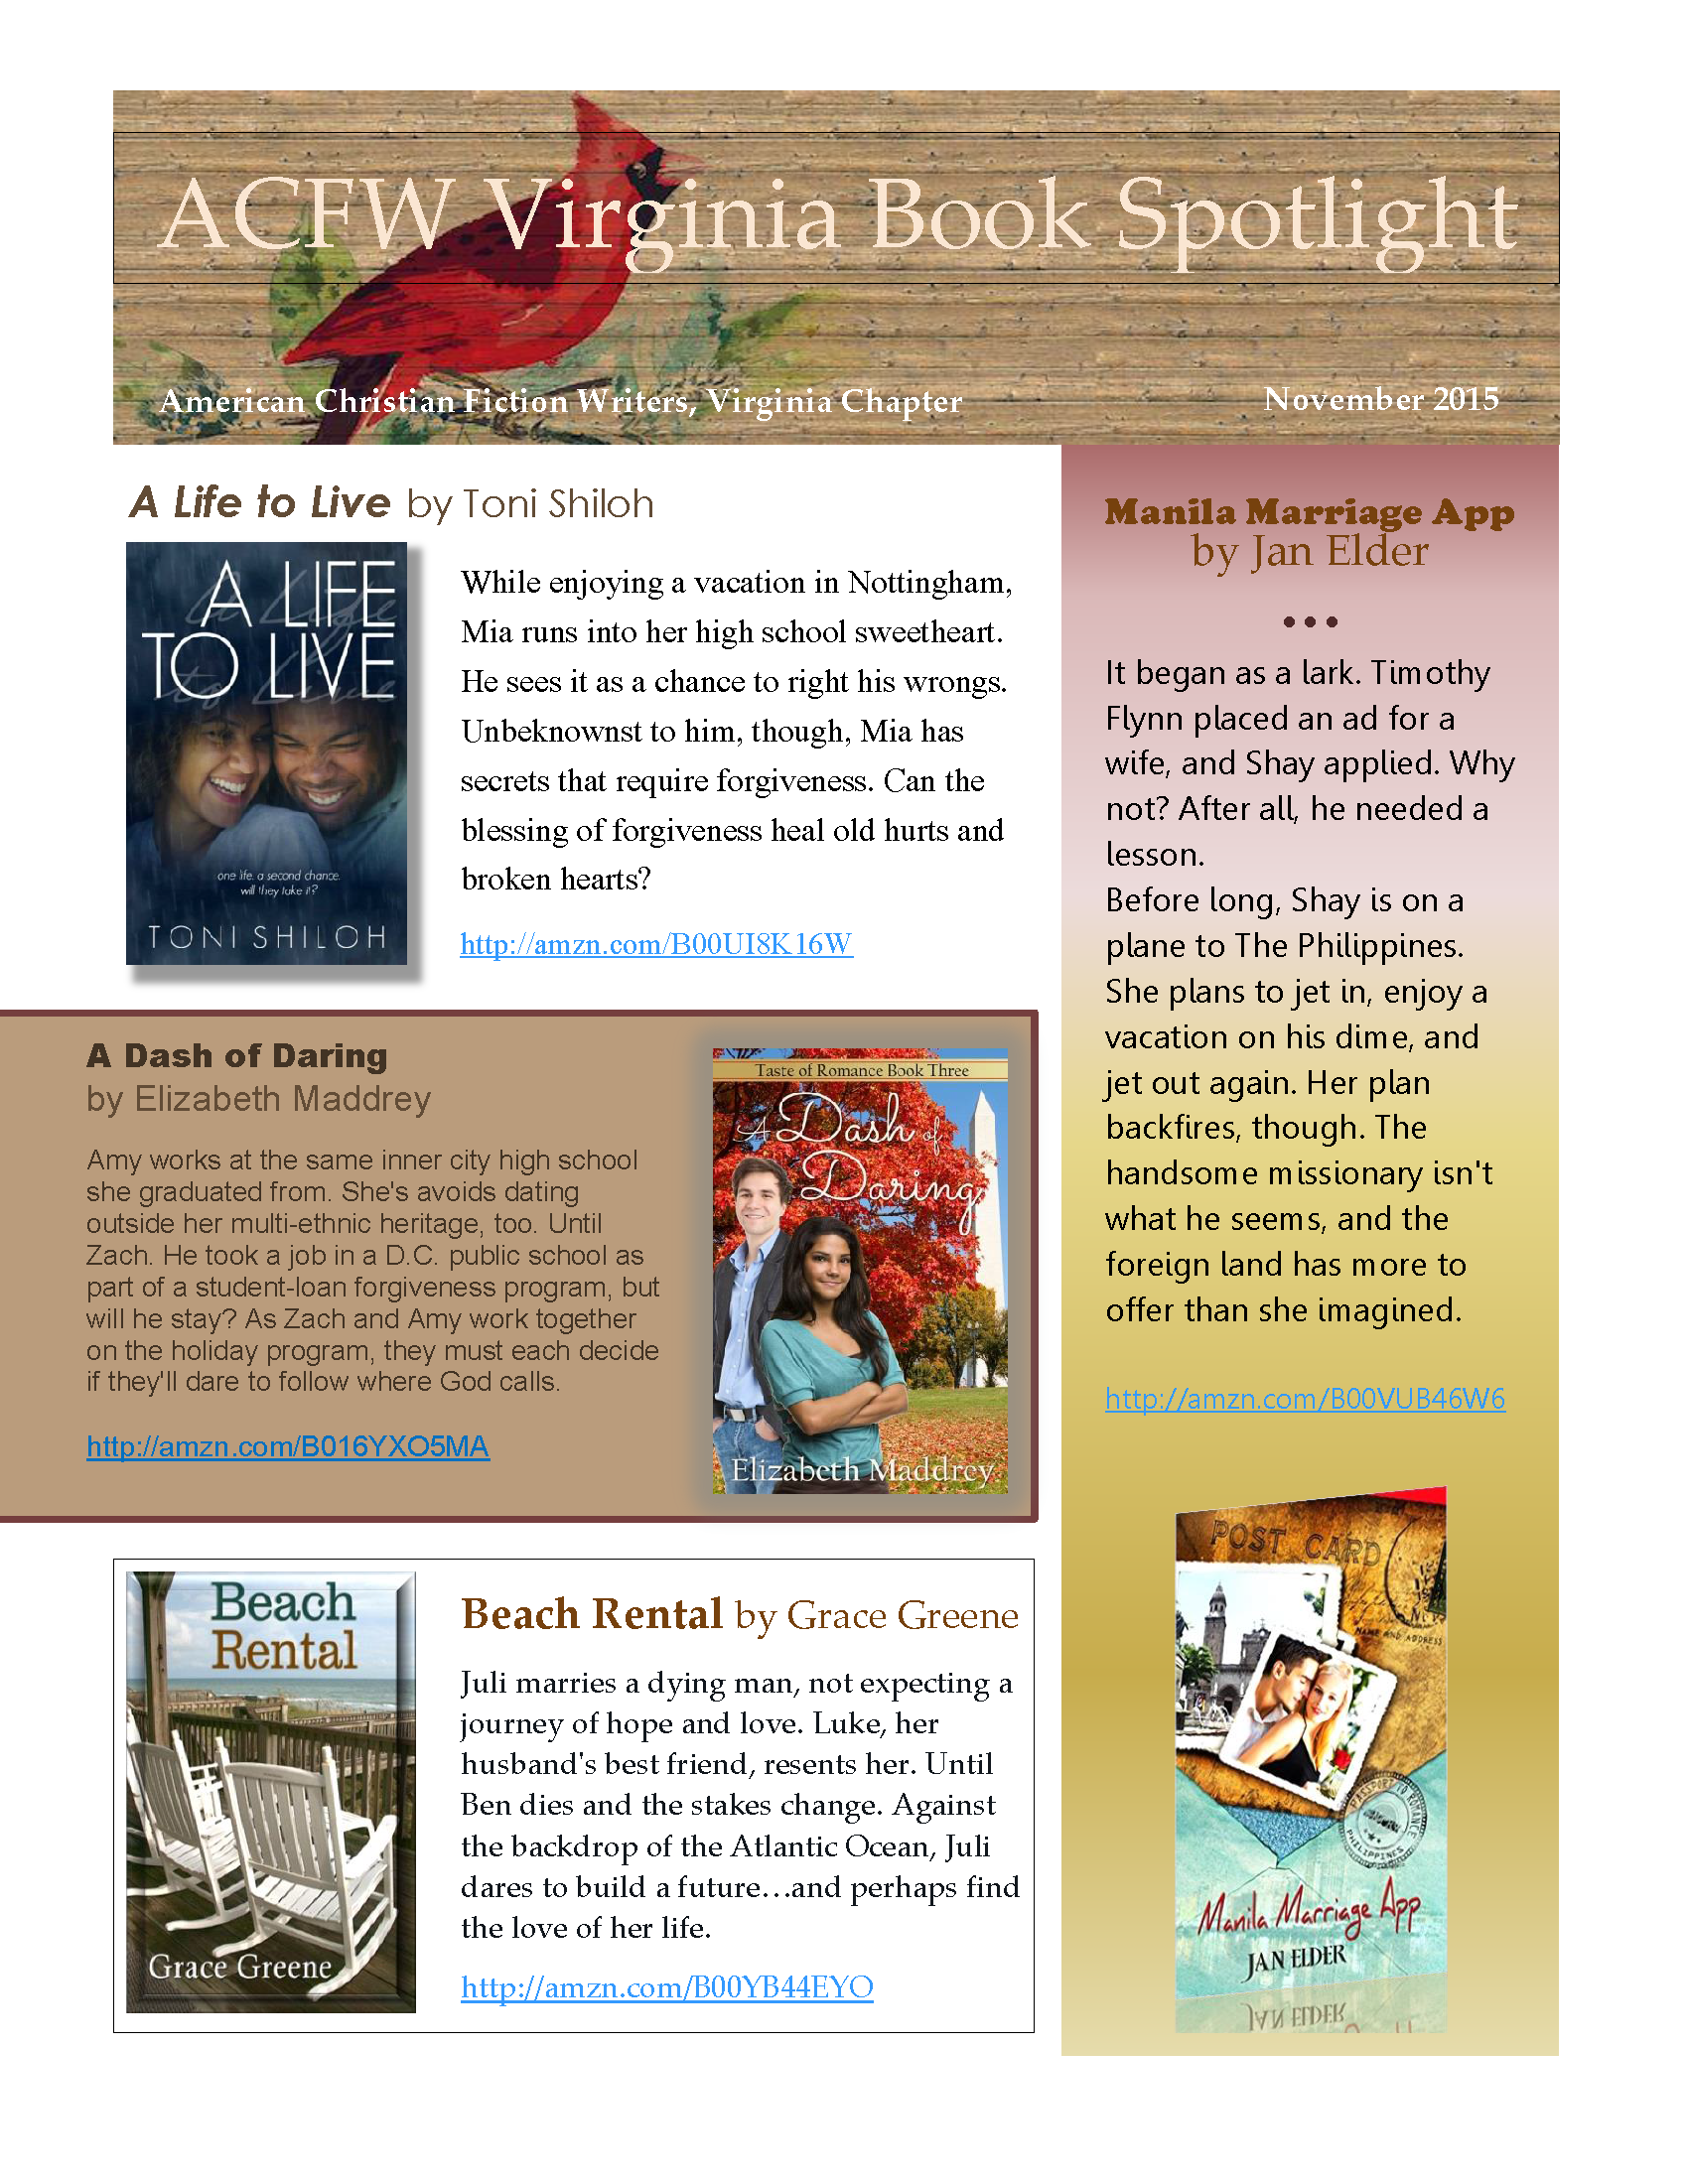 ACFW Virginia Book Spotlight November 2015